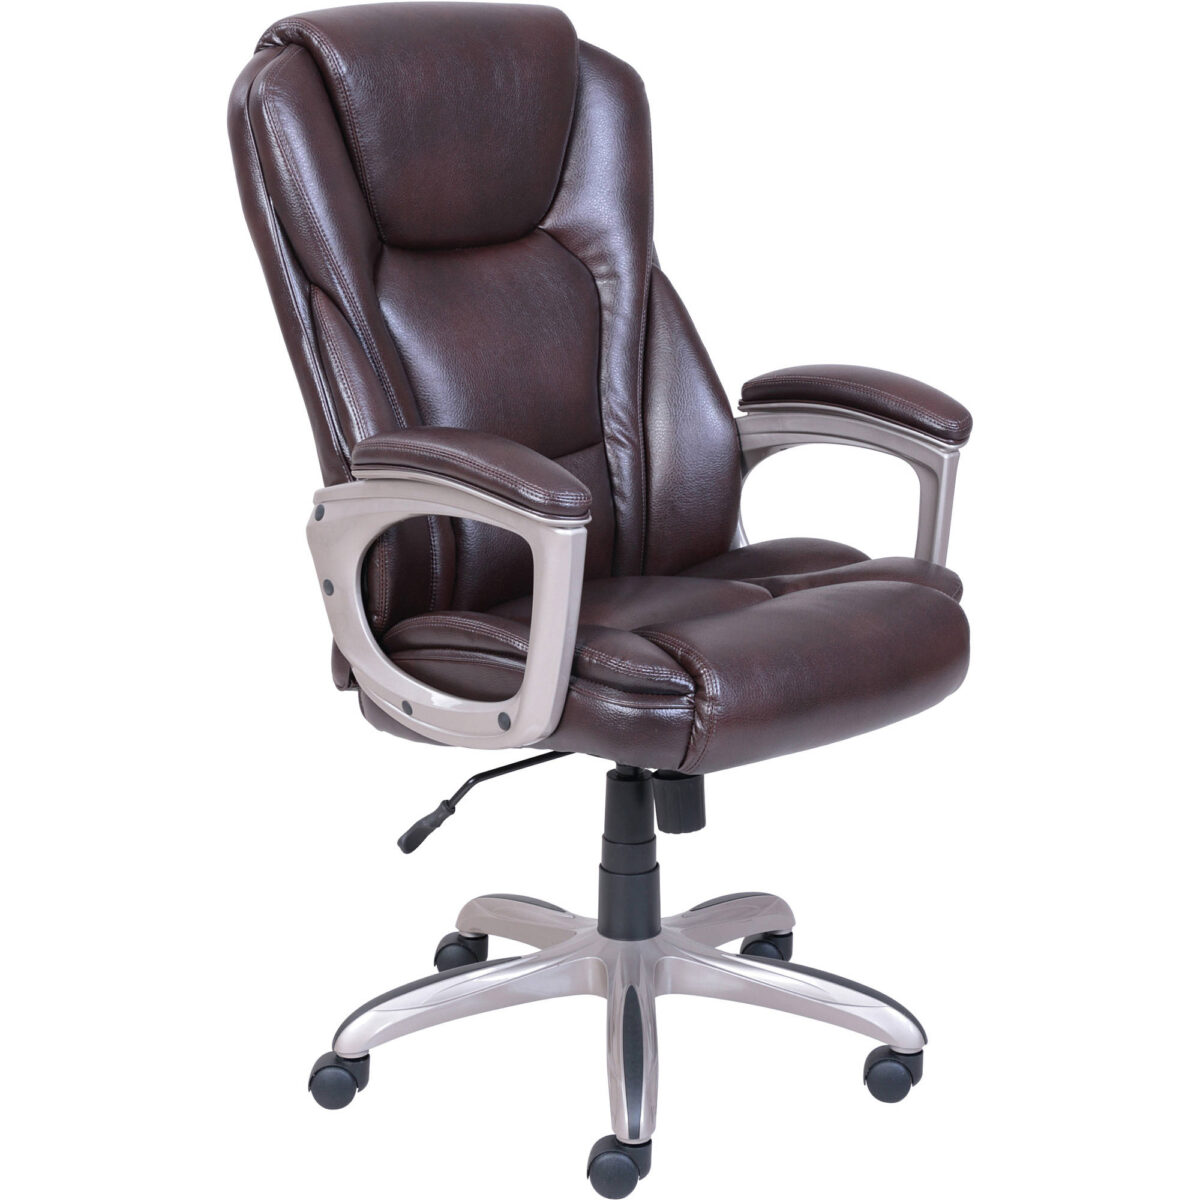 Office Chairs Under 300